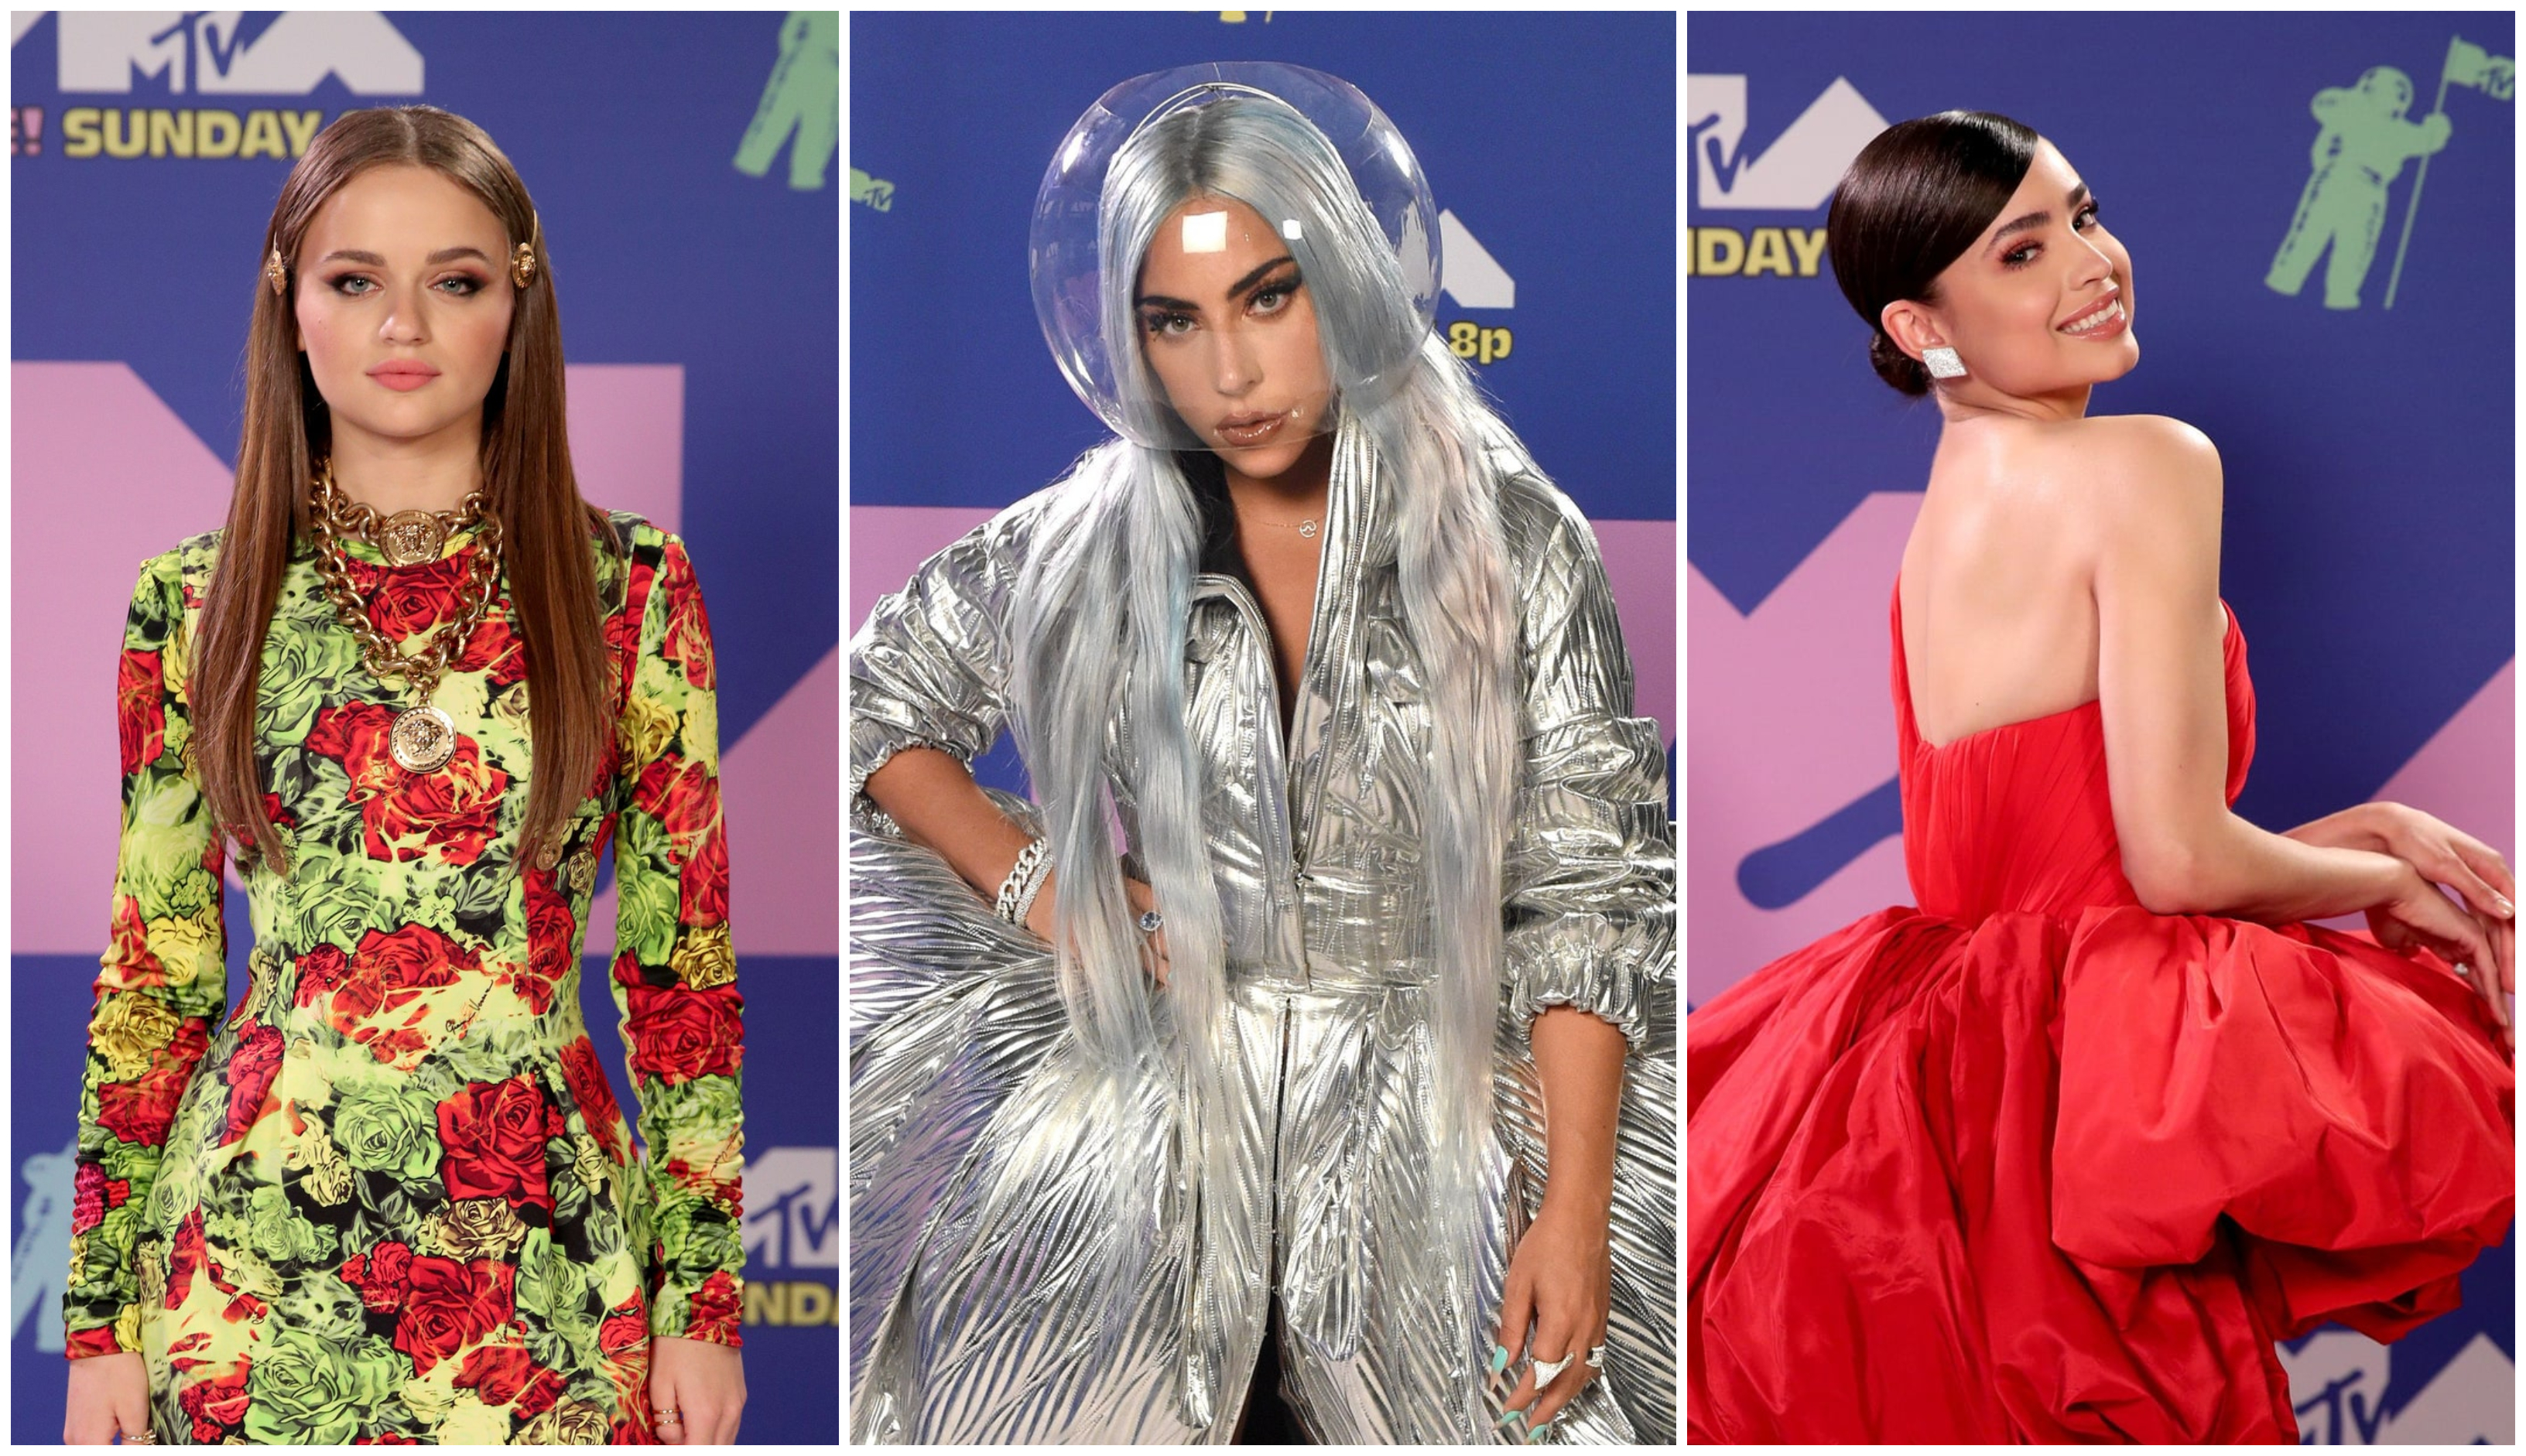 mtv_vma_nyito_getty_images.jpg